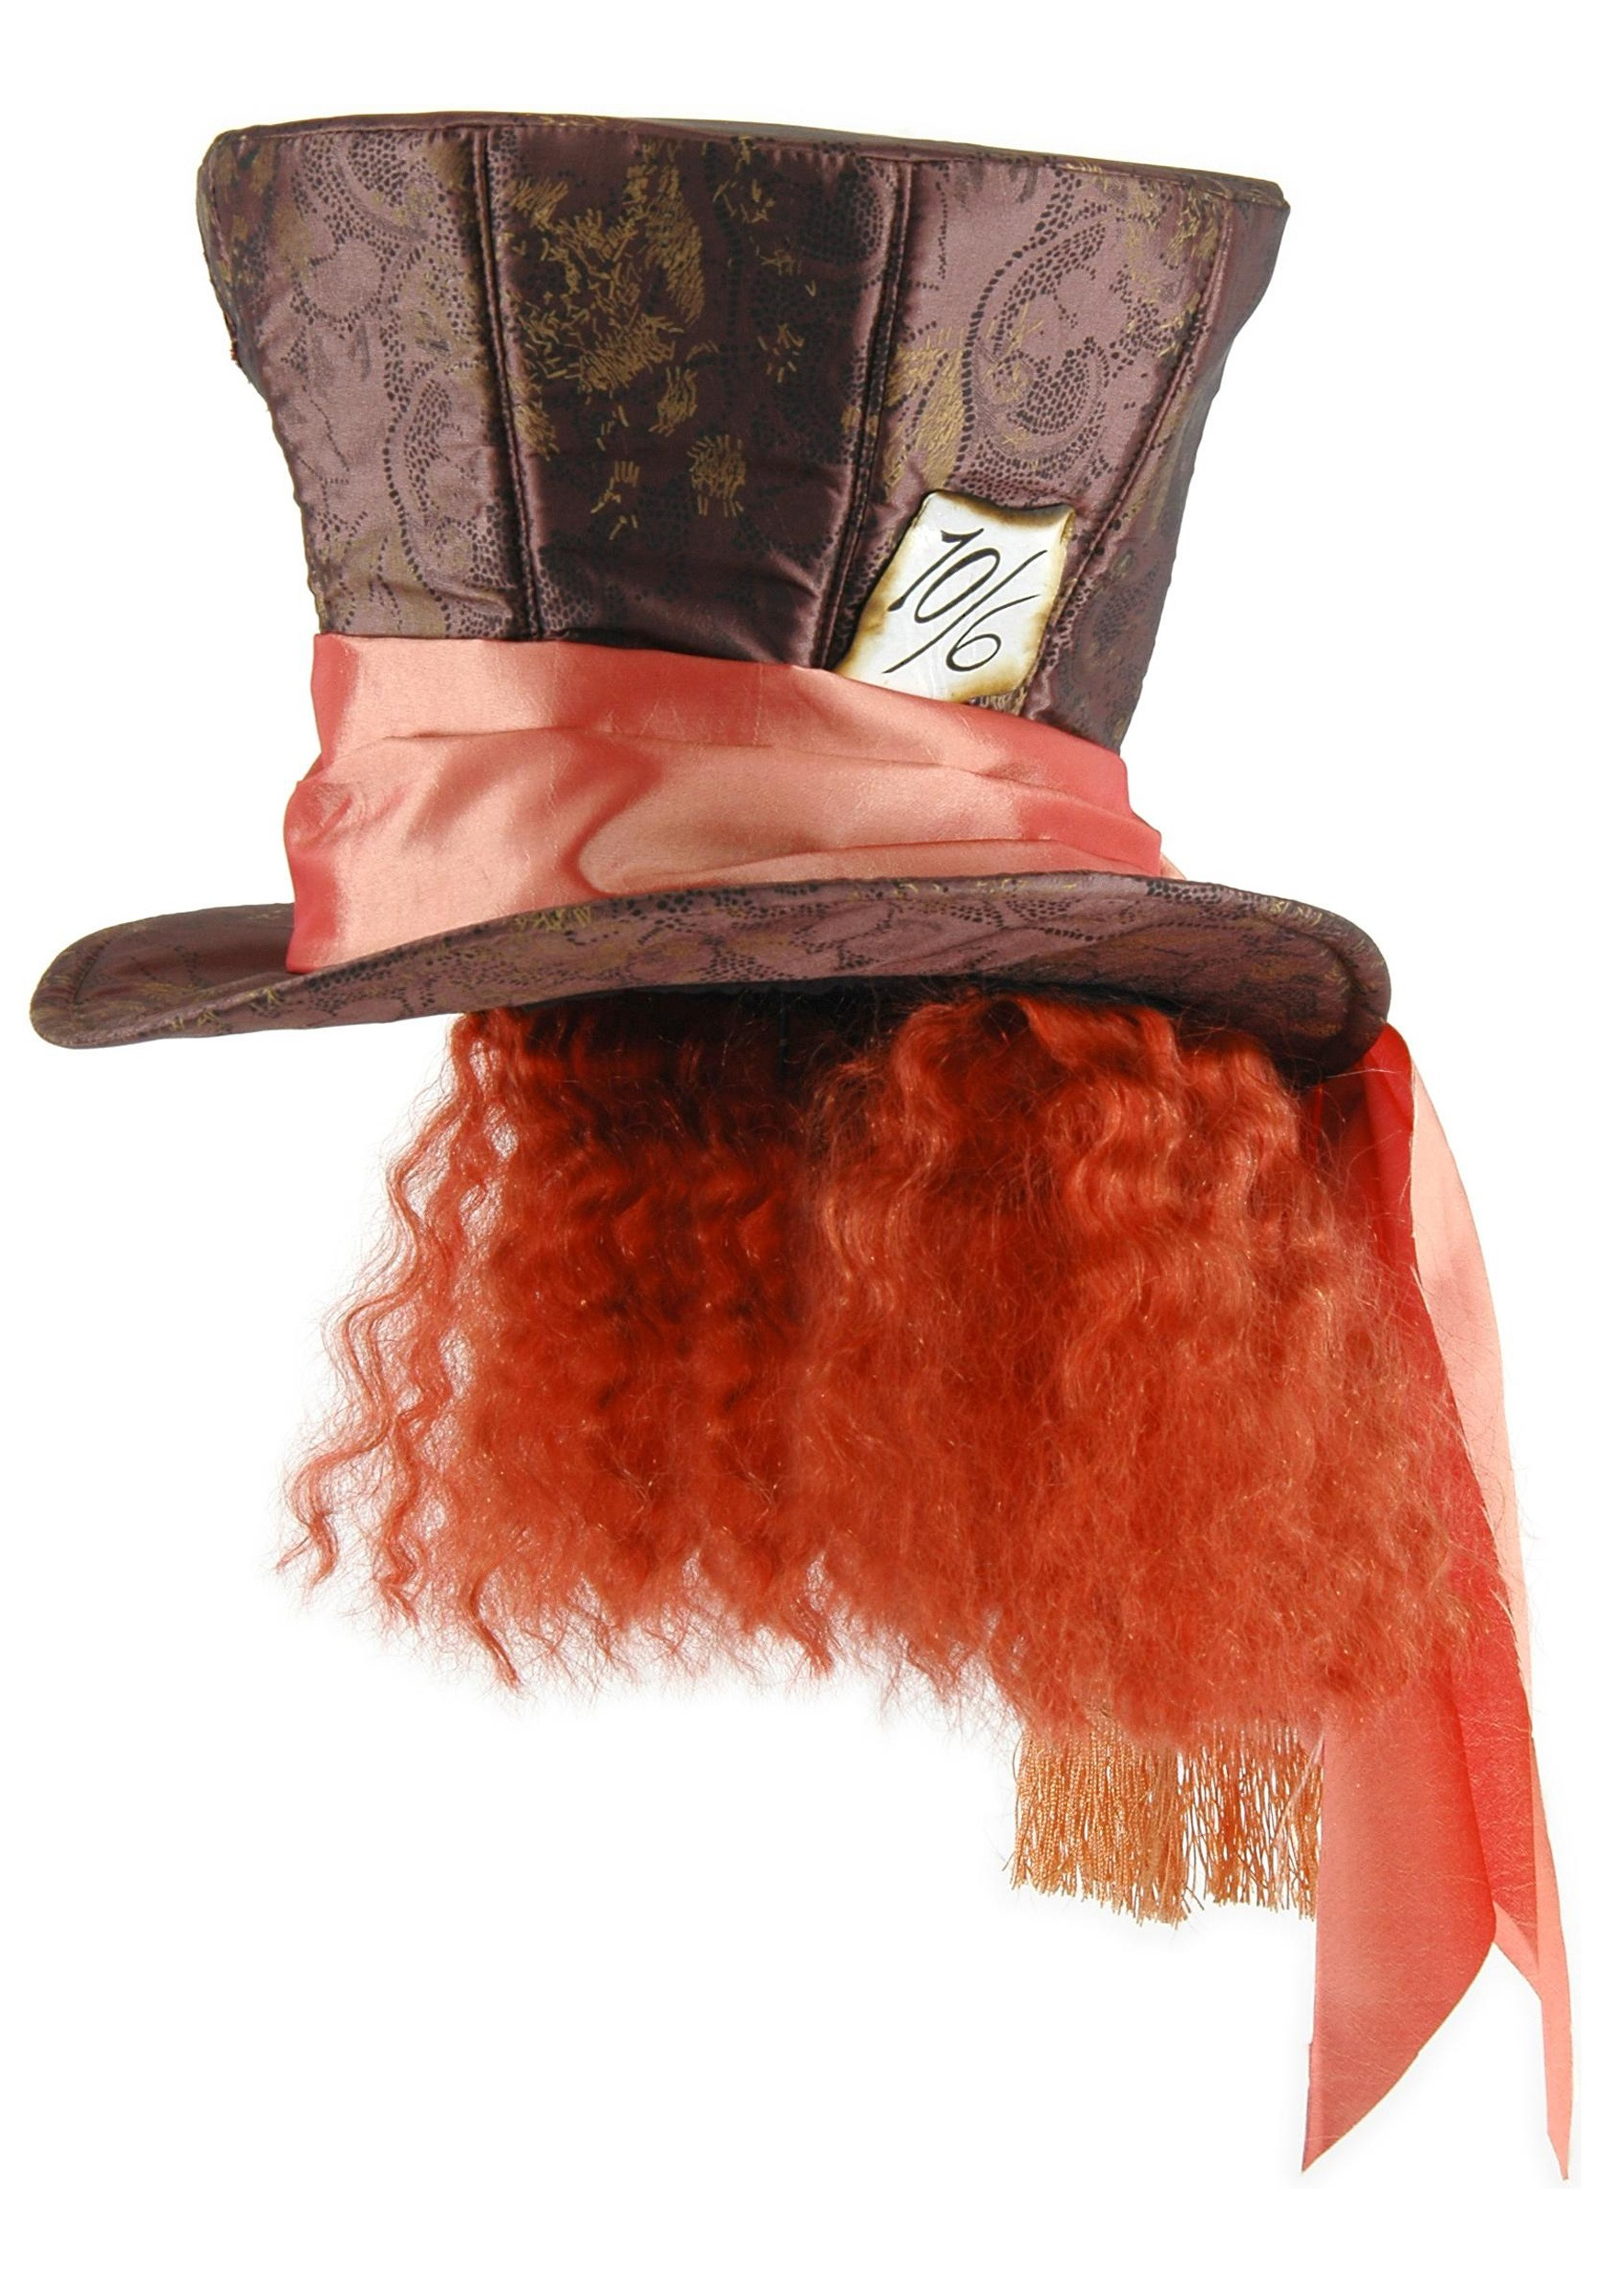 Mad Hatters Hat Google Search Mad Hatter Hat Mad Hatter Mad Hatter Hats